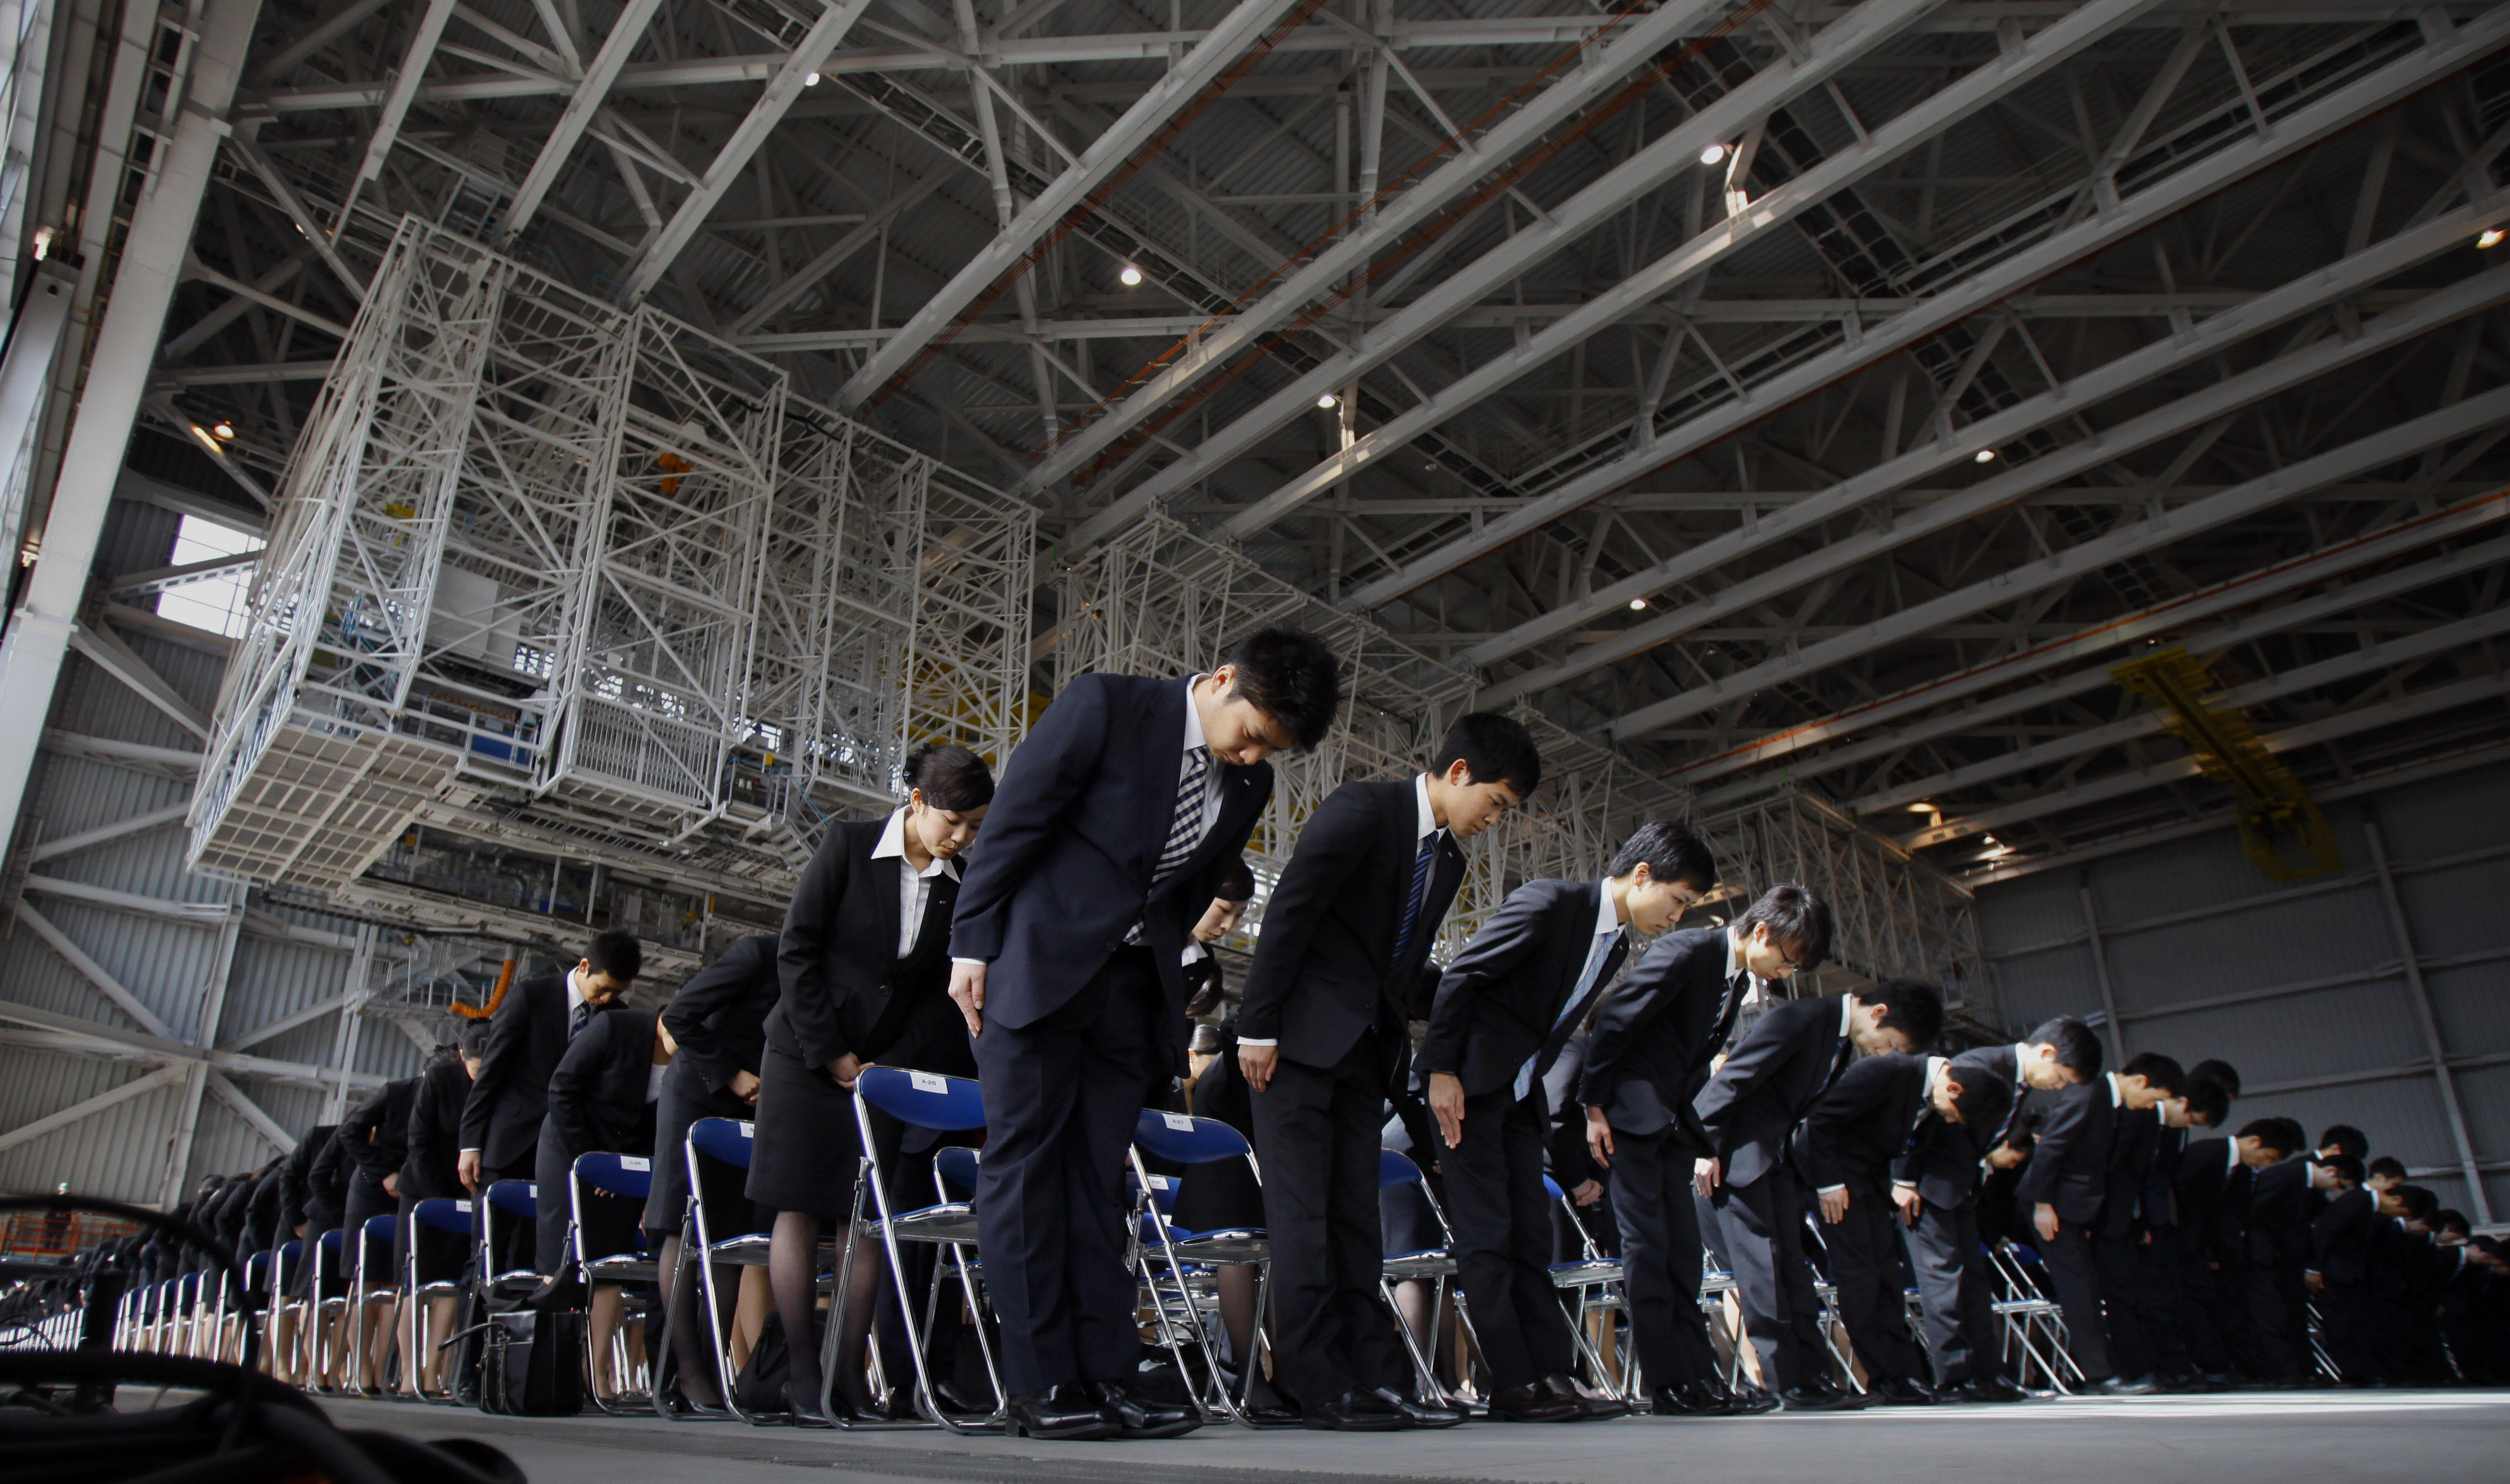 Newly hired employees of All Nippon Airways and ANA group companies bow during an initiation ceremony at the company's aircraft maintenance hangar in Haneda airport in Tokyo Monday, April 1, 2013. A total 1,068 new recruits attended the ceremony, according to the company. (AP Photo/Junji Kurokawa)